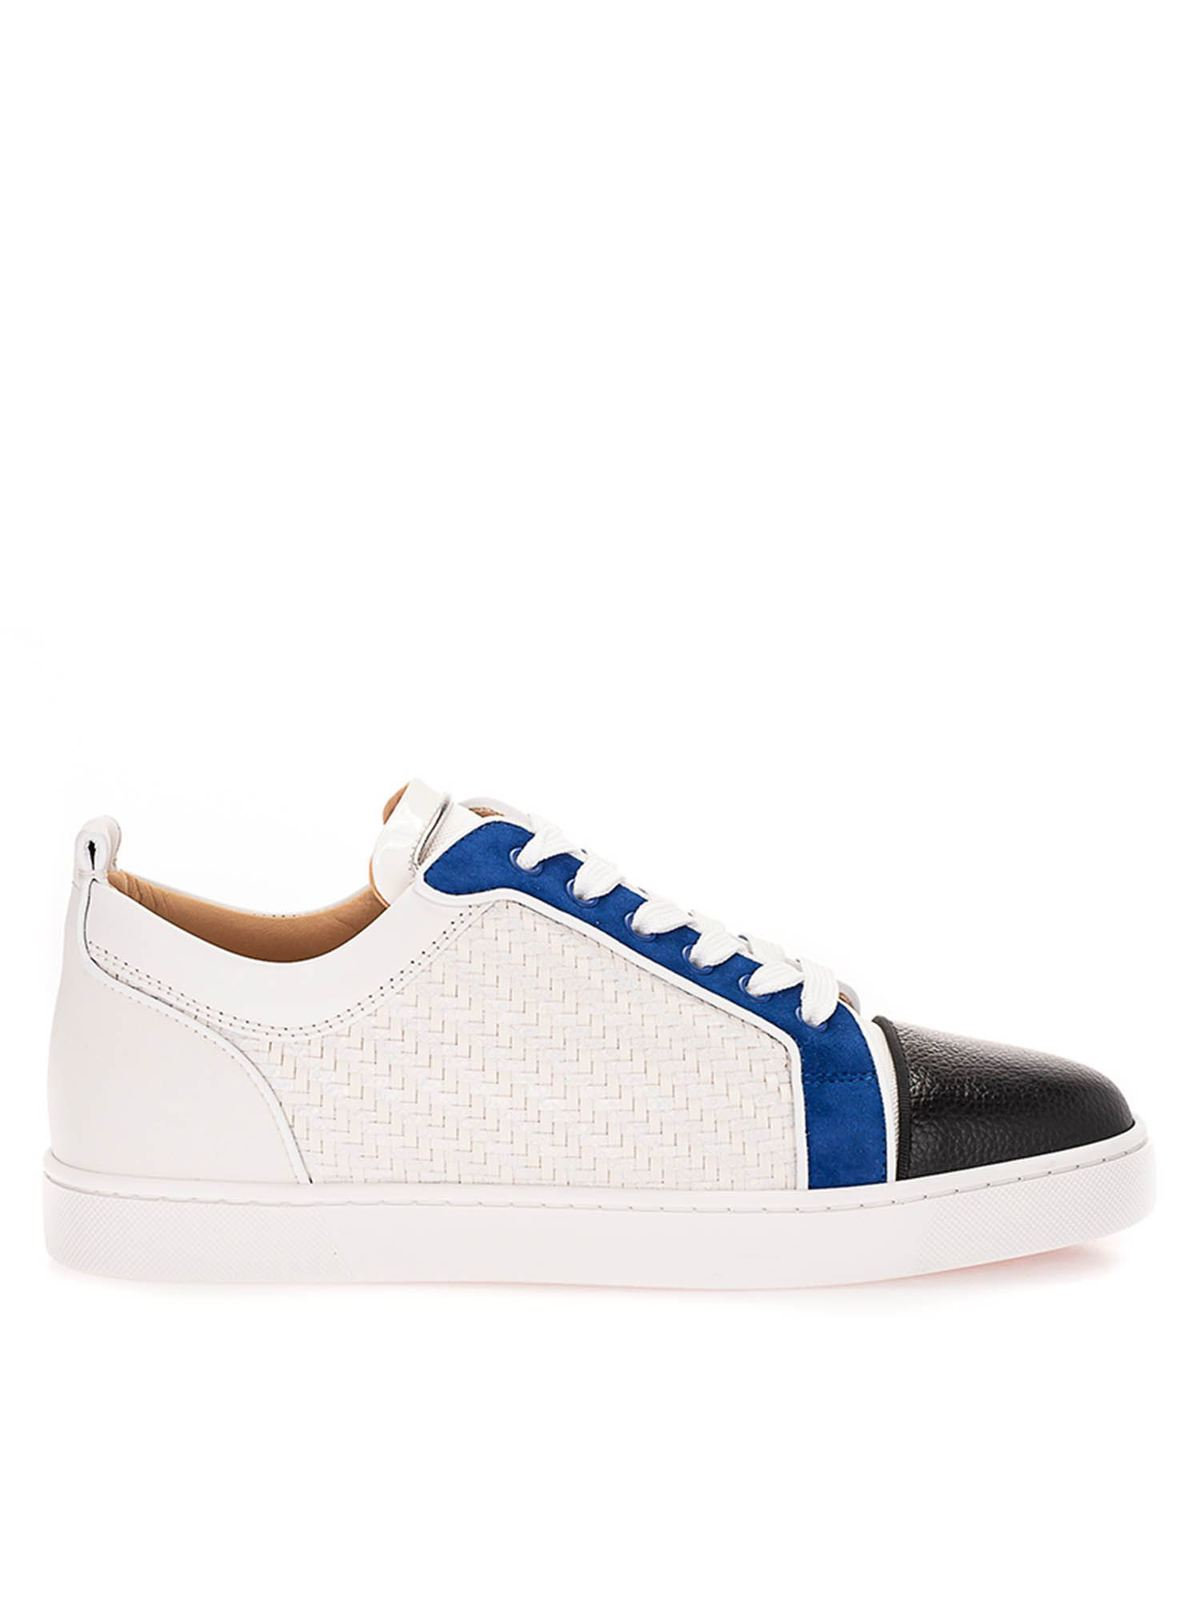 Christian Louboutin Suedes WOVEN SNEAKERS IN WHITE AND BLUE